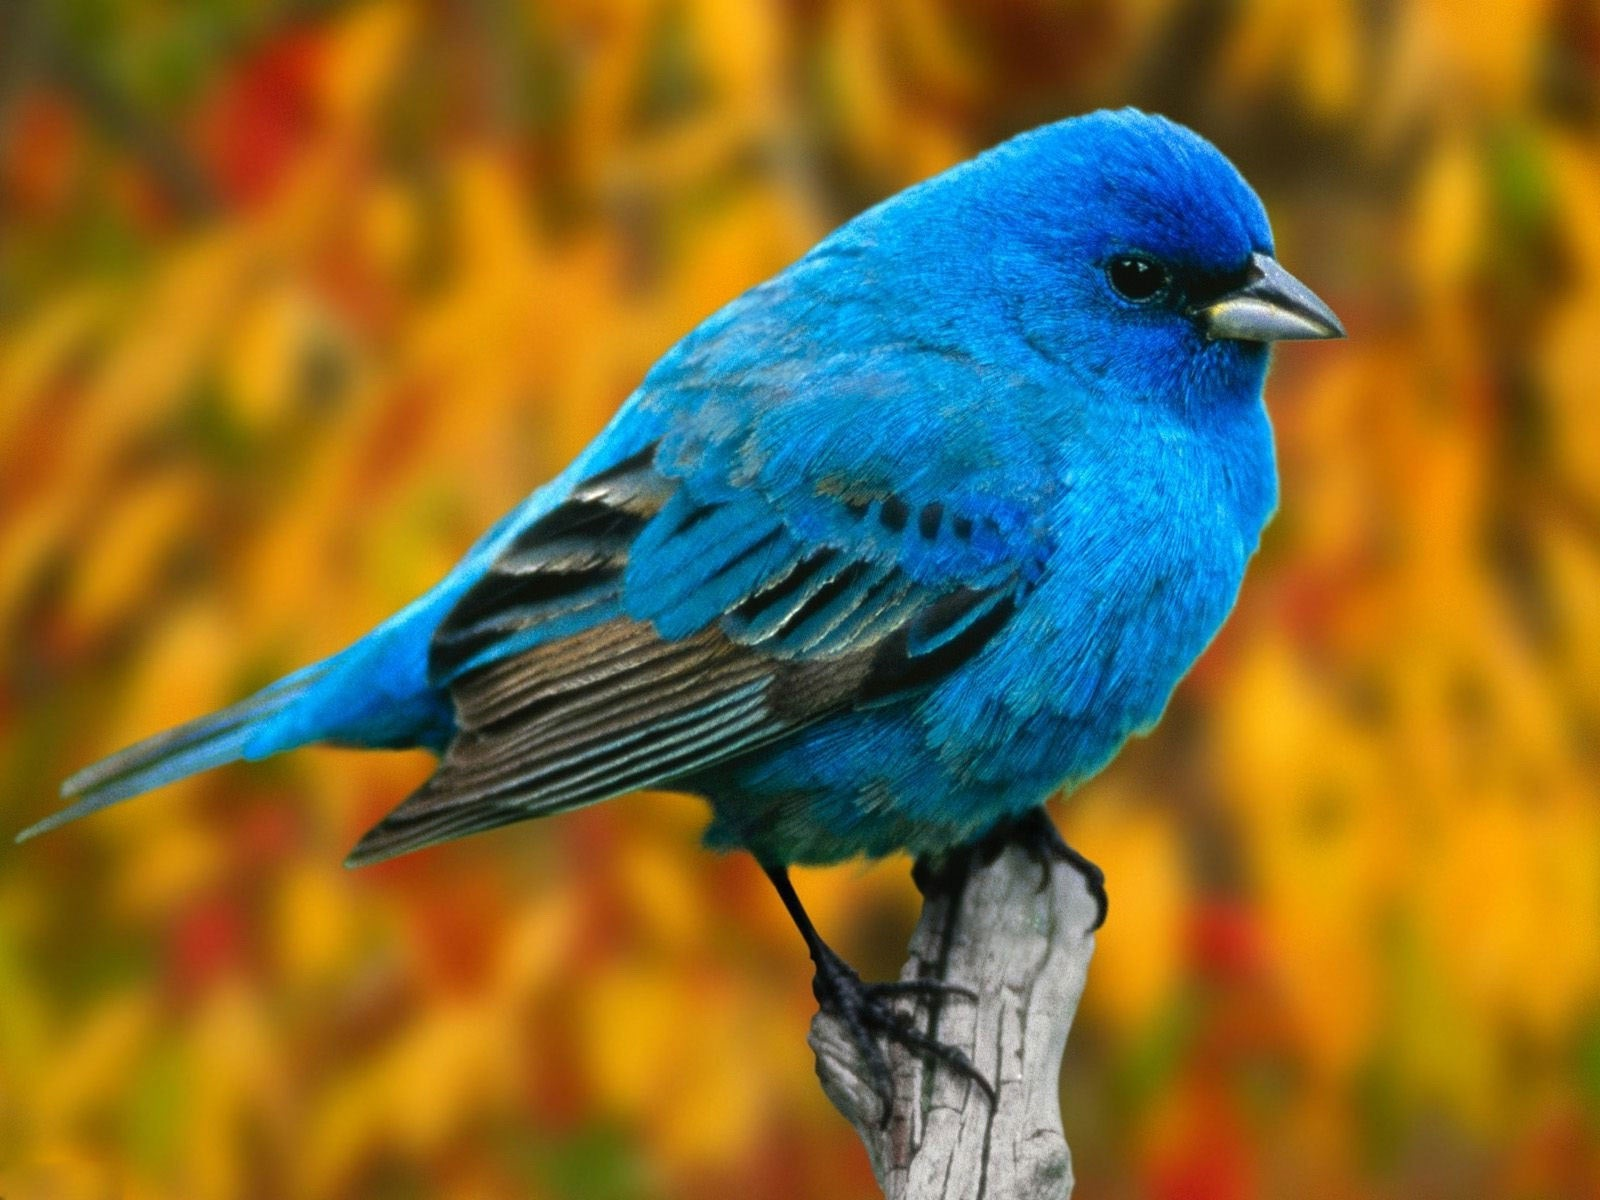 animals wallpapers | birds wallpapers | hd desktop backgrounds